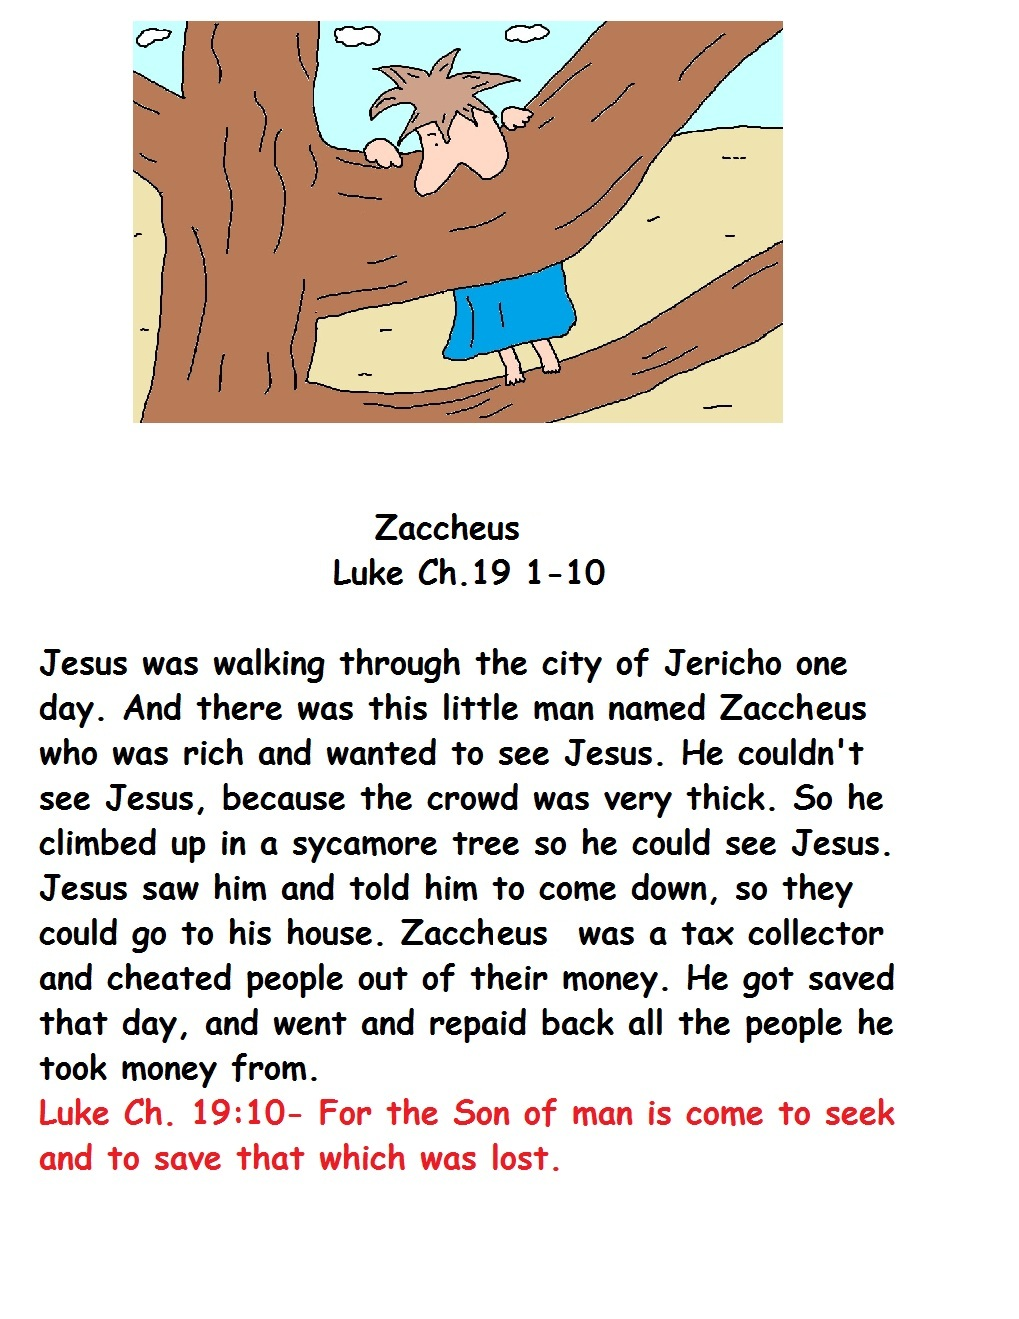 Zacchaeus Meets Jesus - All Christian Search Home Page